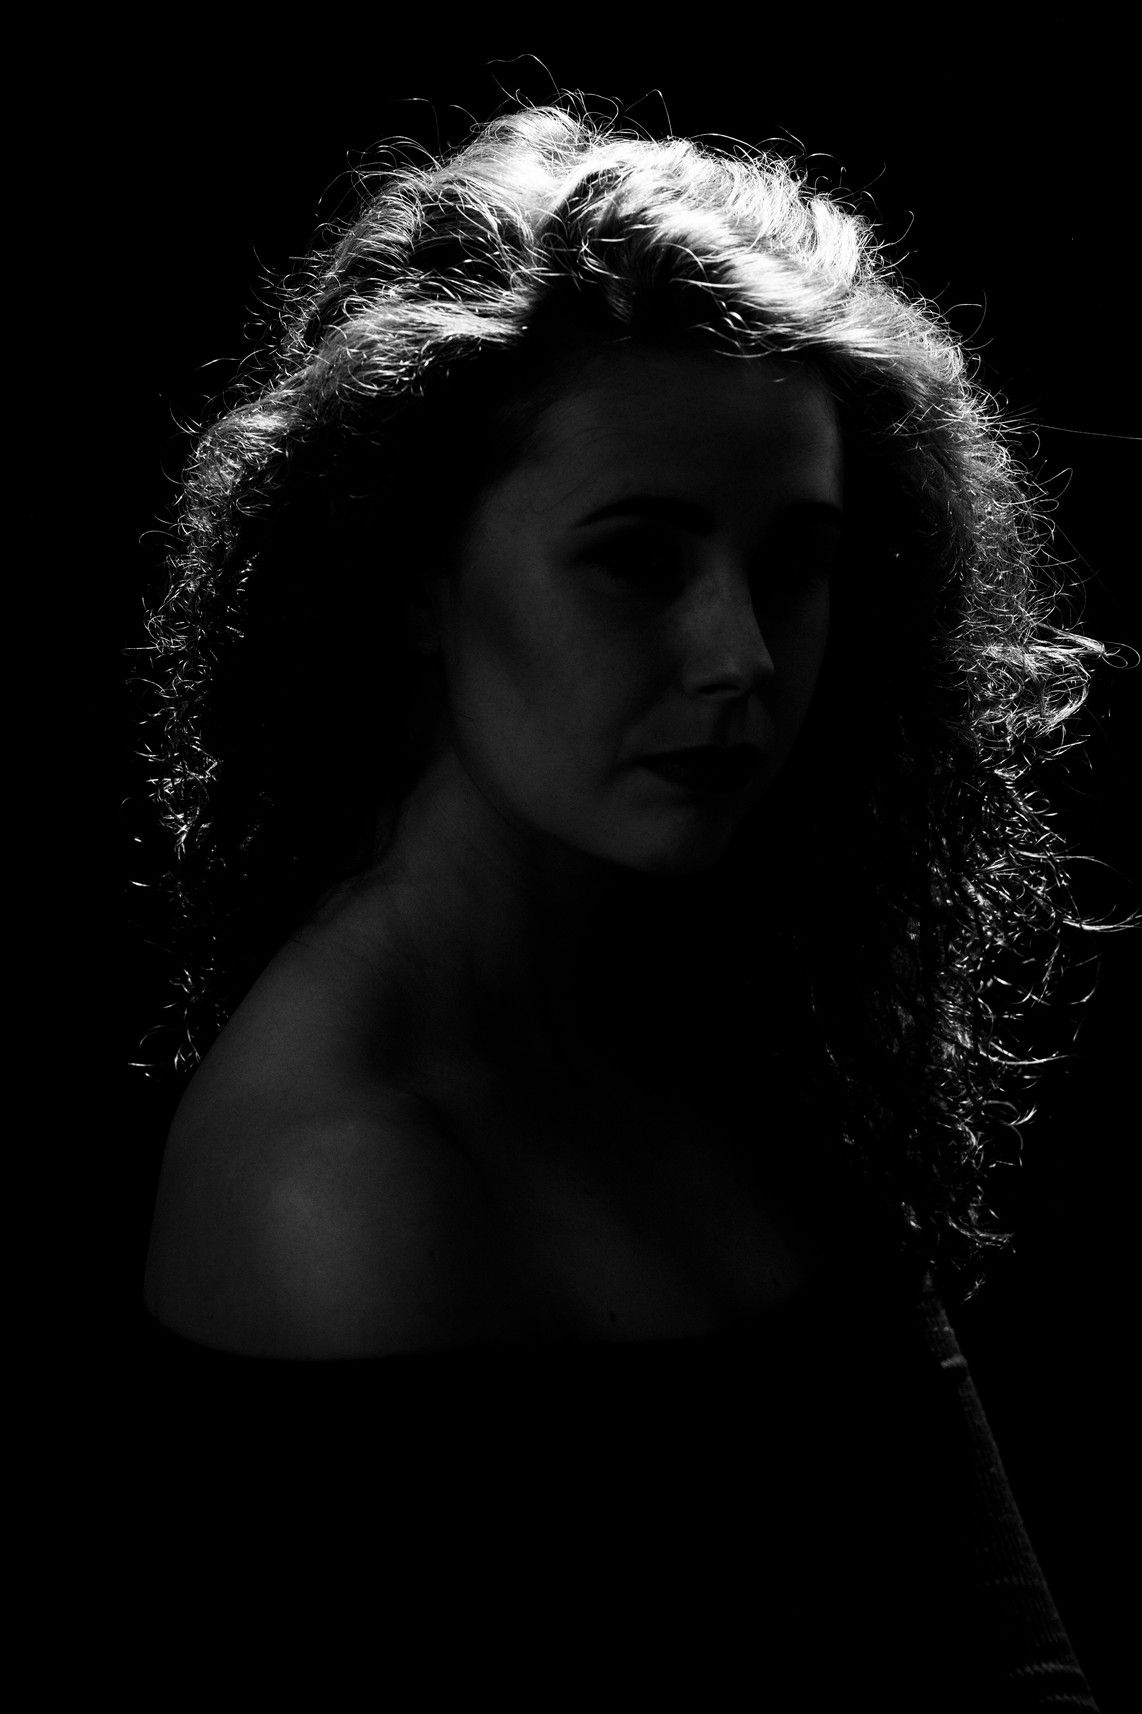 moody studio photography with creative editing. Styling and artistic posing makes for an impactful image. #portraitphotography #studiophotography #femaleportrait